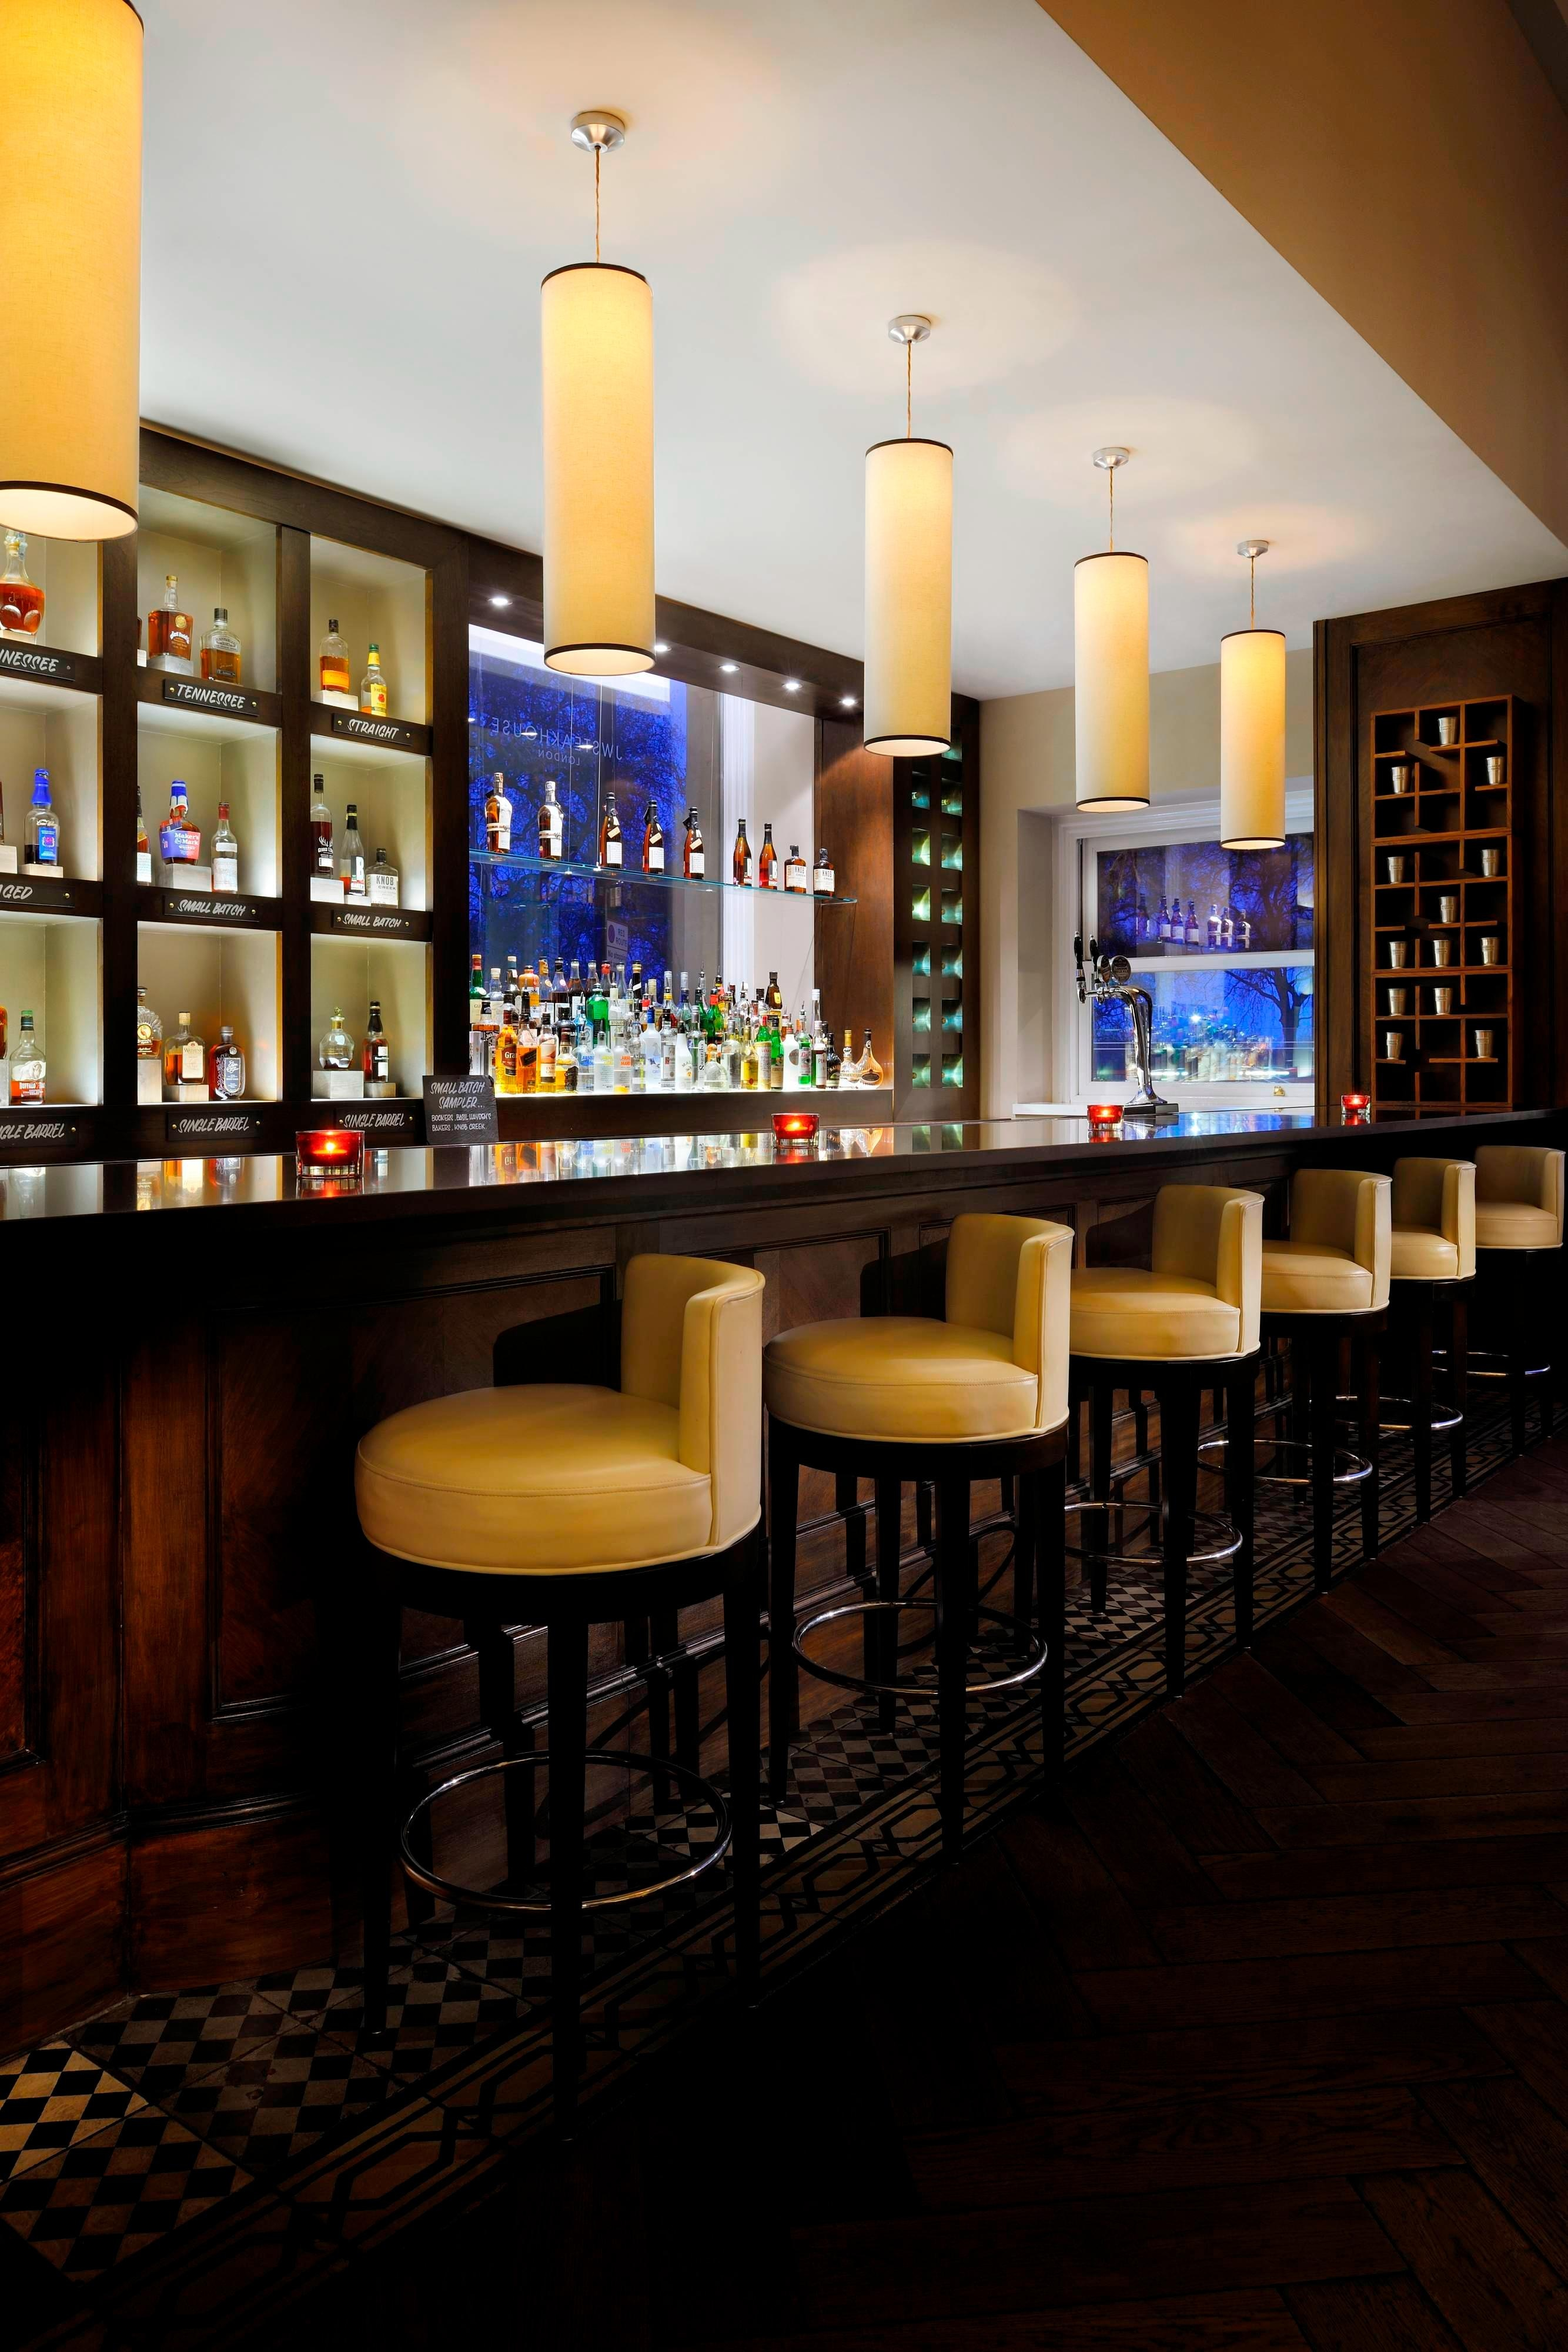 The Bourbon Bar in Mayfair